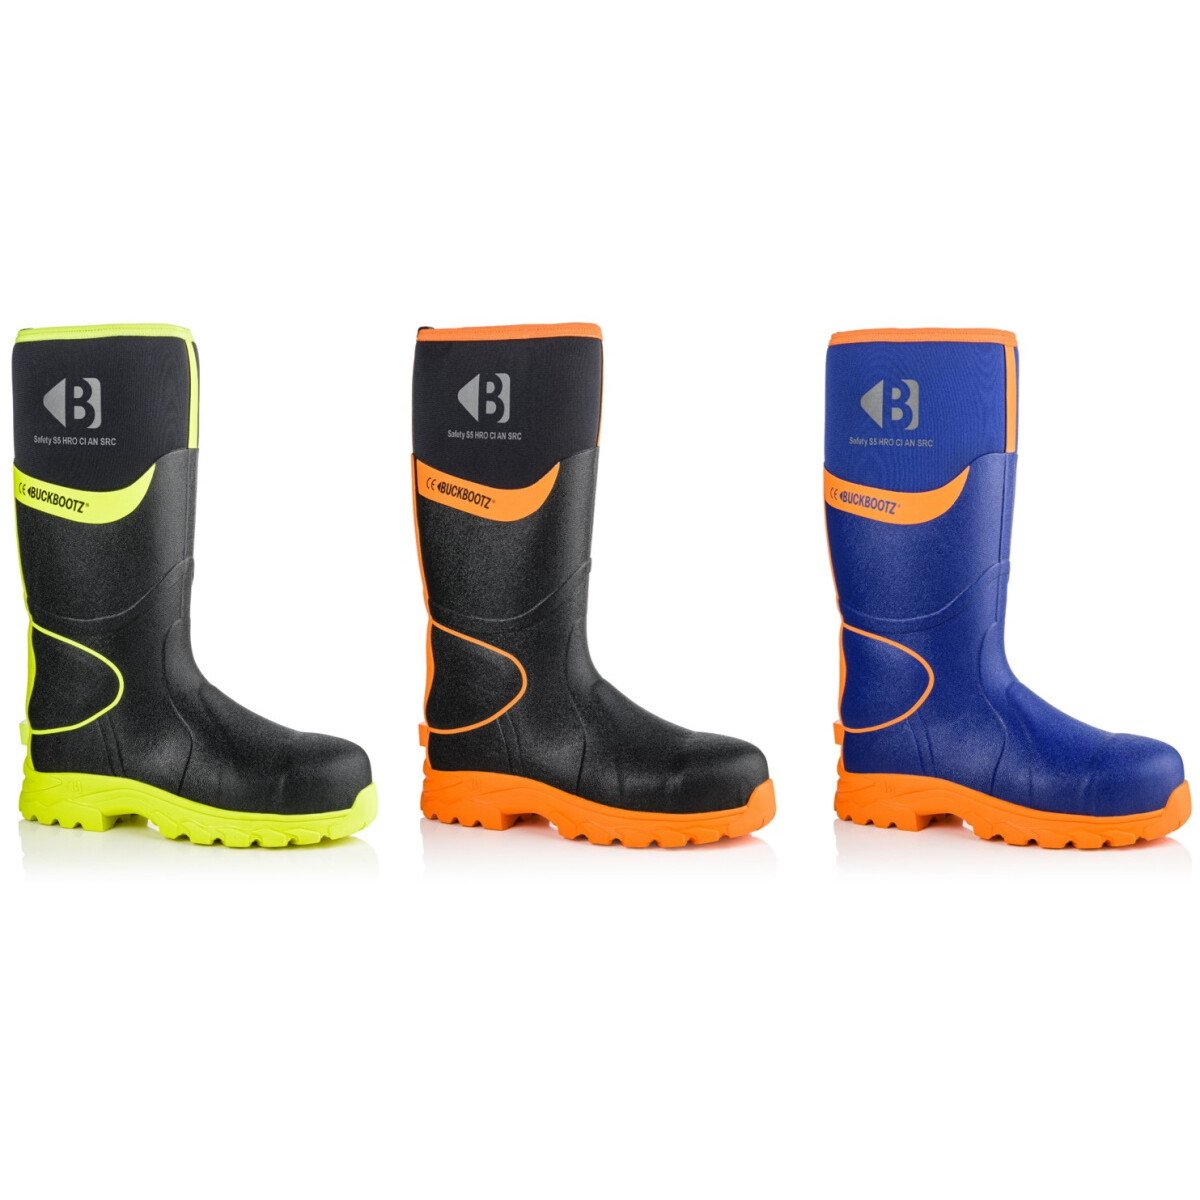 Buckbootz BBZ8000 360 High Visibility Safety Wellington Boot with Ankle Protection (HRO CI HI AN SRC S5) Buck Boots